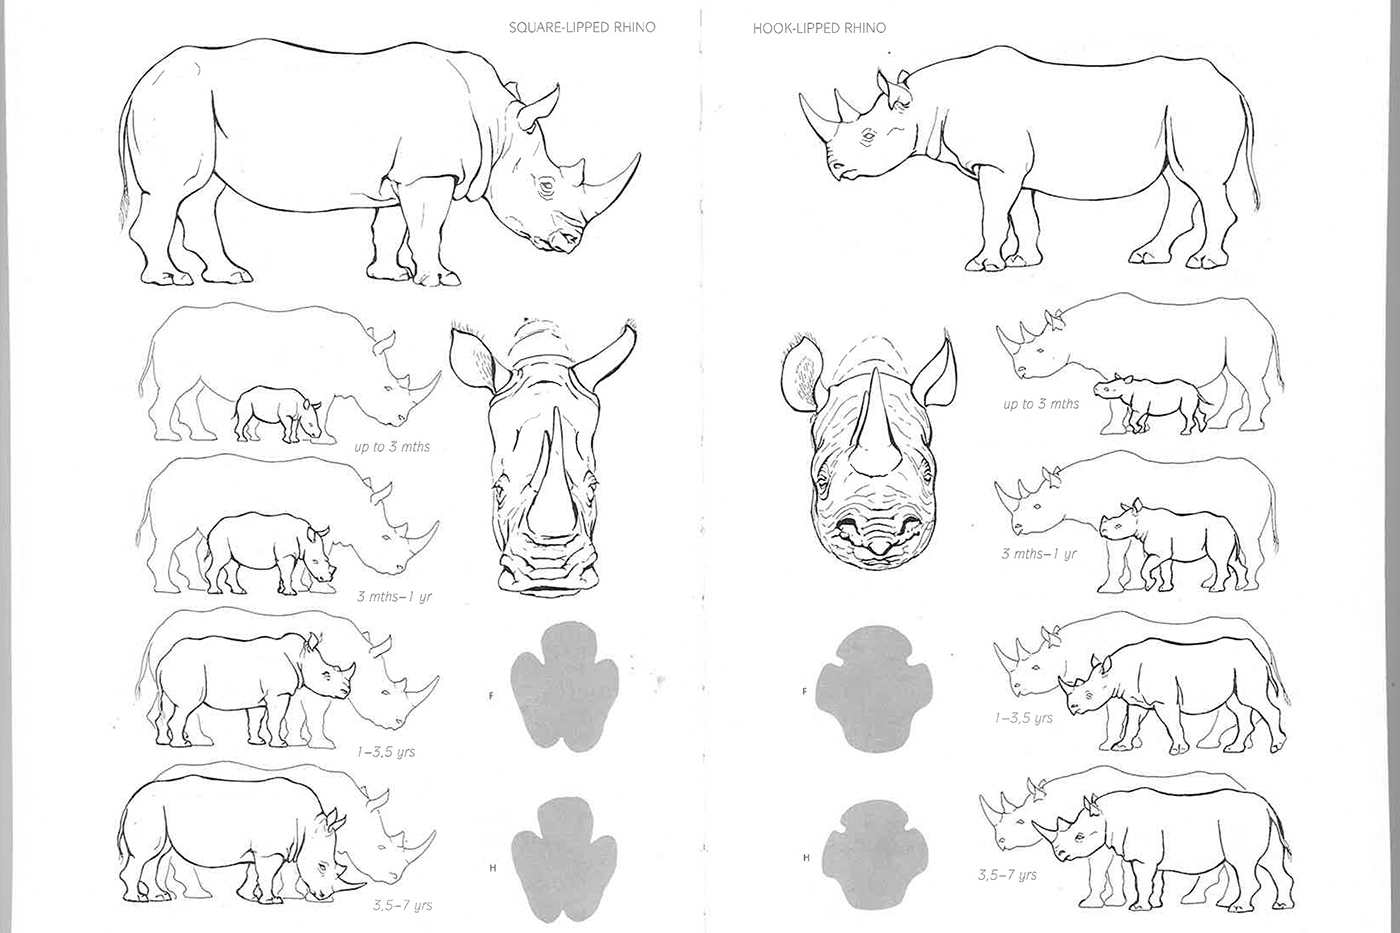 The Difference Between The White and Black Rhino